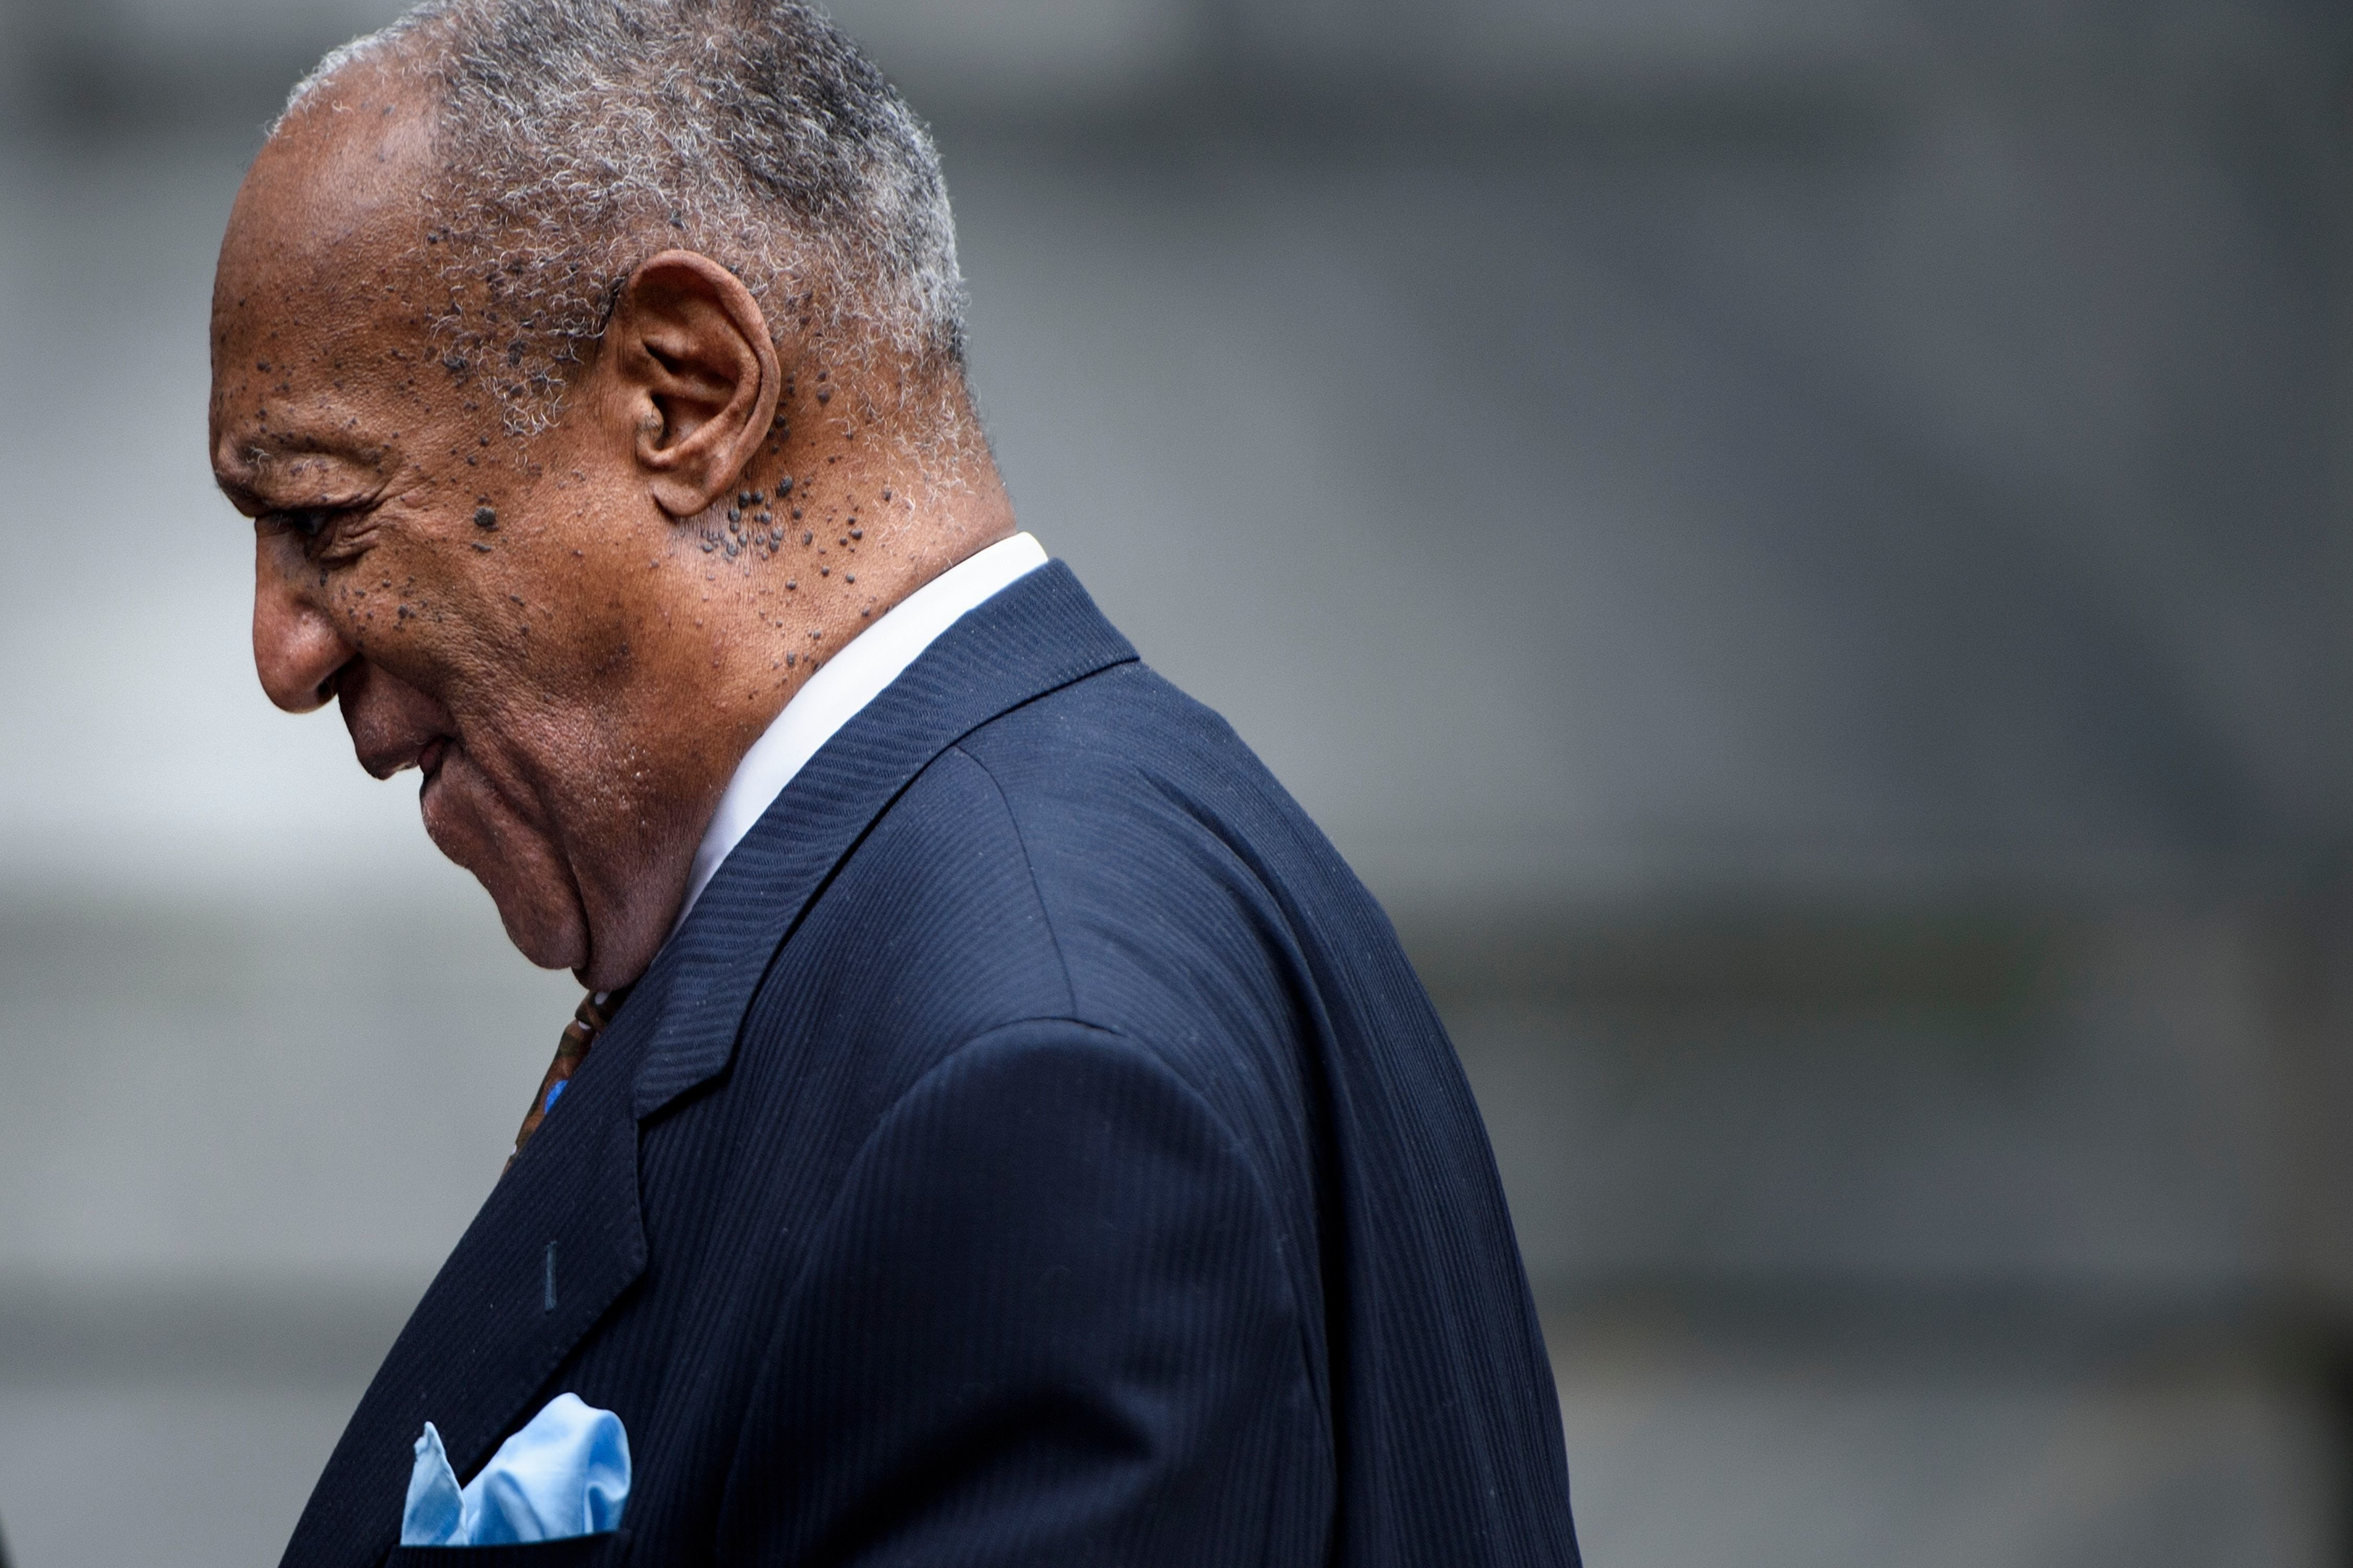 Disgraced comedian Bill Cosby, before he was led away in handcuffs to begin his prison sentence for drugging and sexually ass